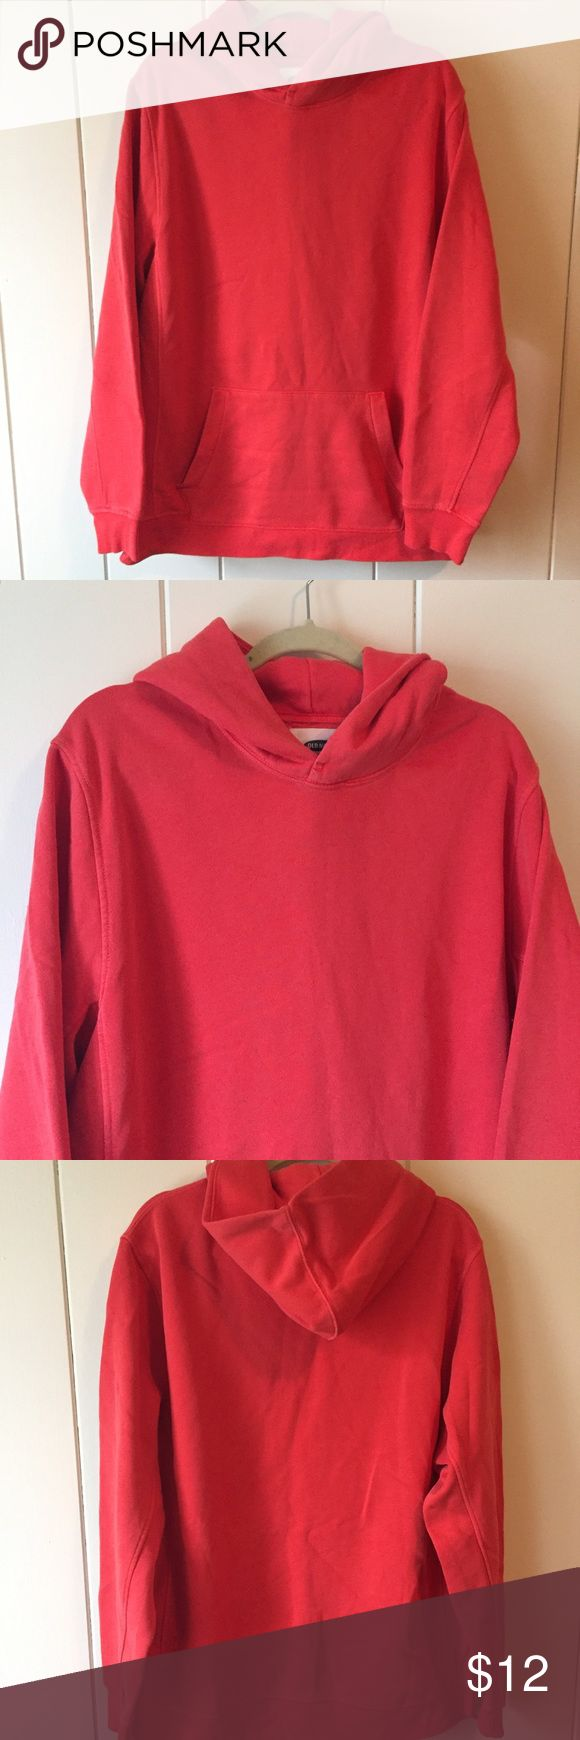   Old Navy   Coral Hoodie Coral Old Navy hoodie is a men's large. You'll love the feel and color of this hoodie! It's a perfect summer/spring color! Old Navy Shirts Sweatshirts & Hoodies